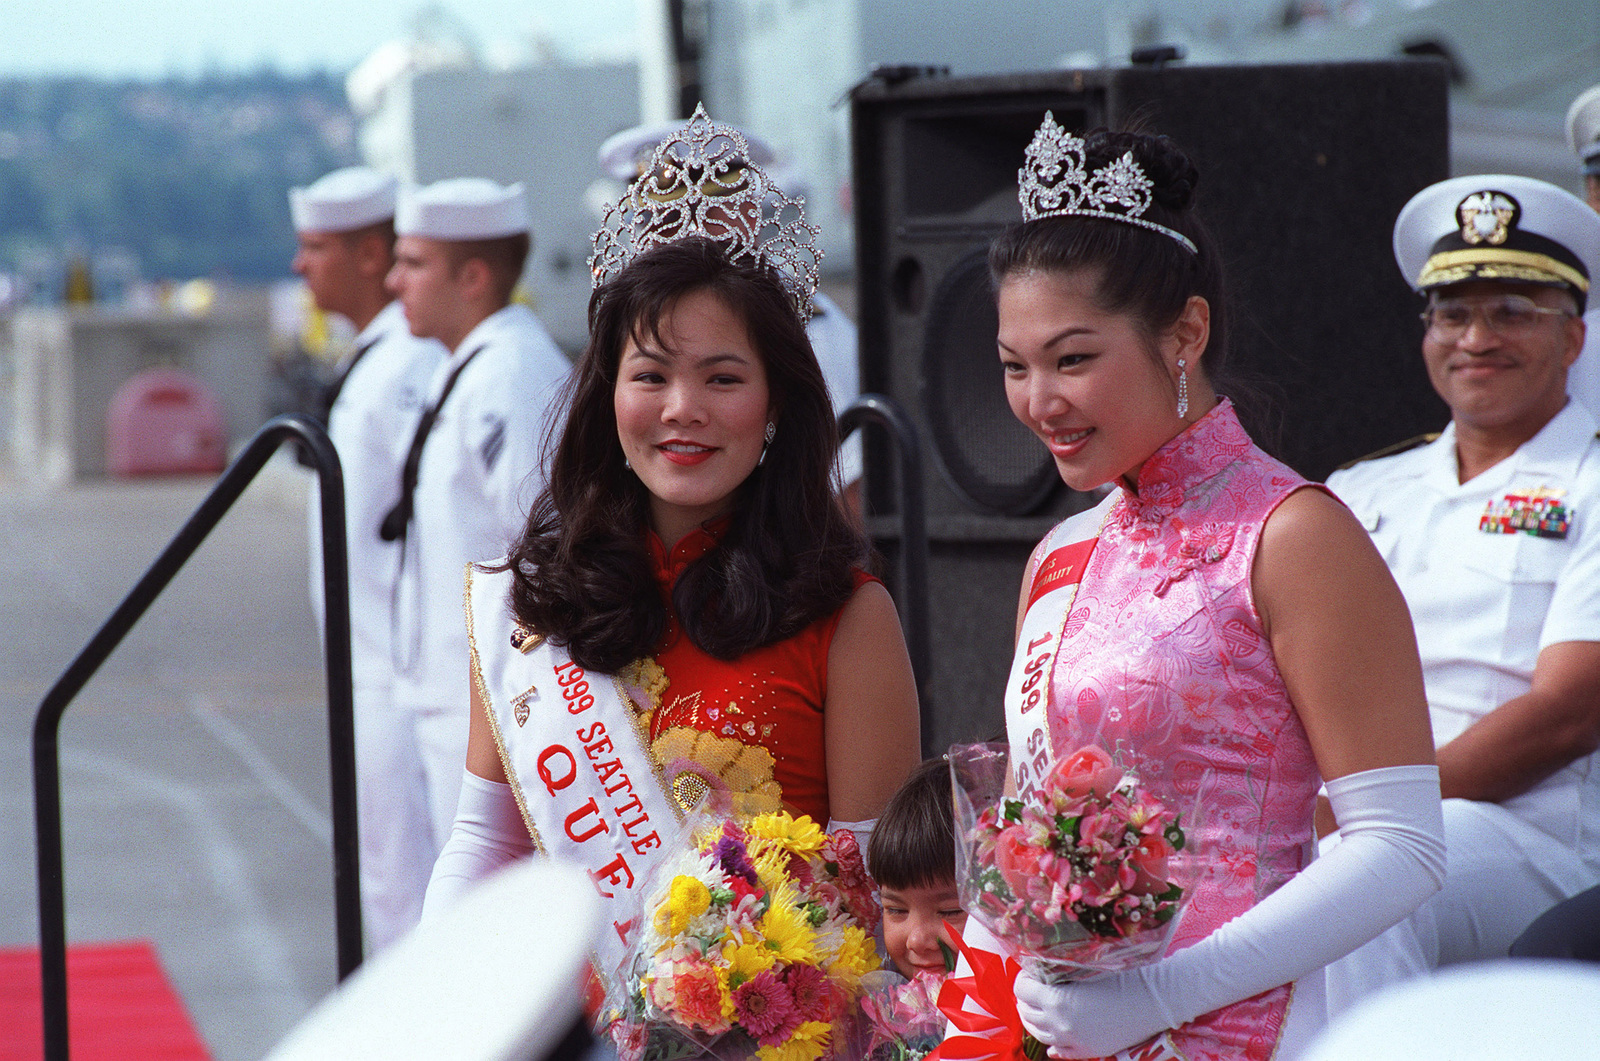 Representing the 1999 Miss Seattle Chinatown Pageant, this year's queen Jessica Chin (left) and princess Jennifer Chen, participate in the welcoming ceremony for the Chinese People's Liberation Army (Navy) visit to Naval Station Everett, Washington (WA)